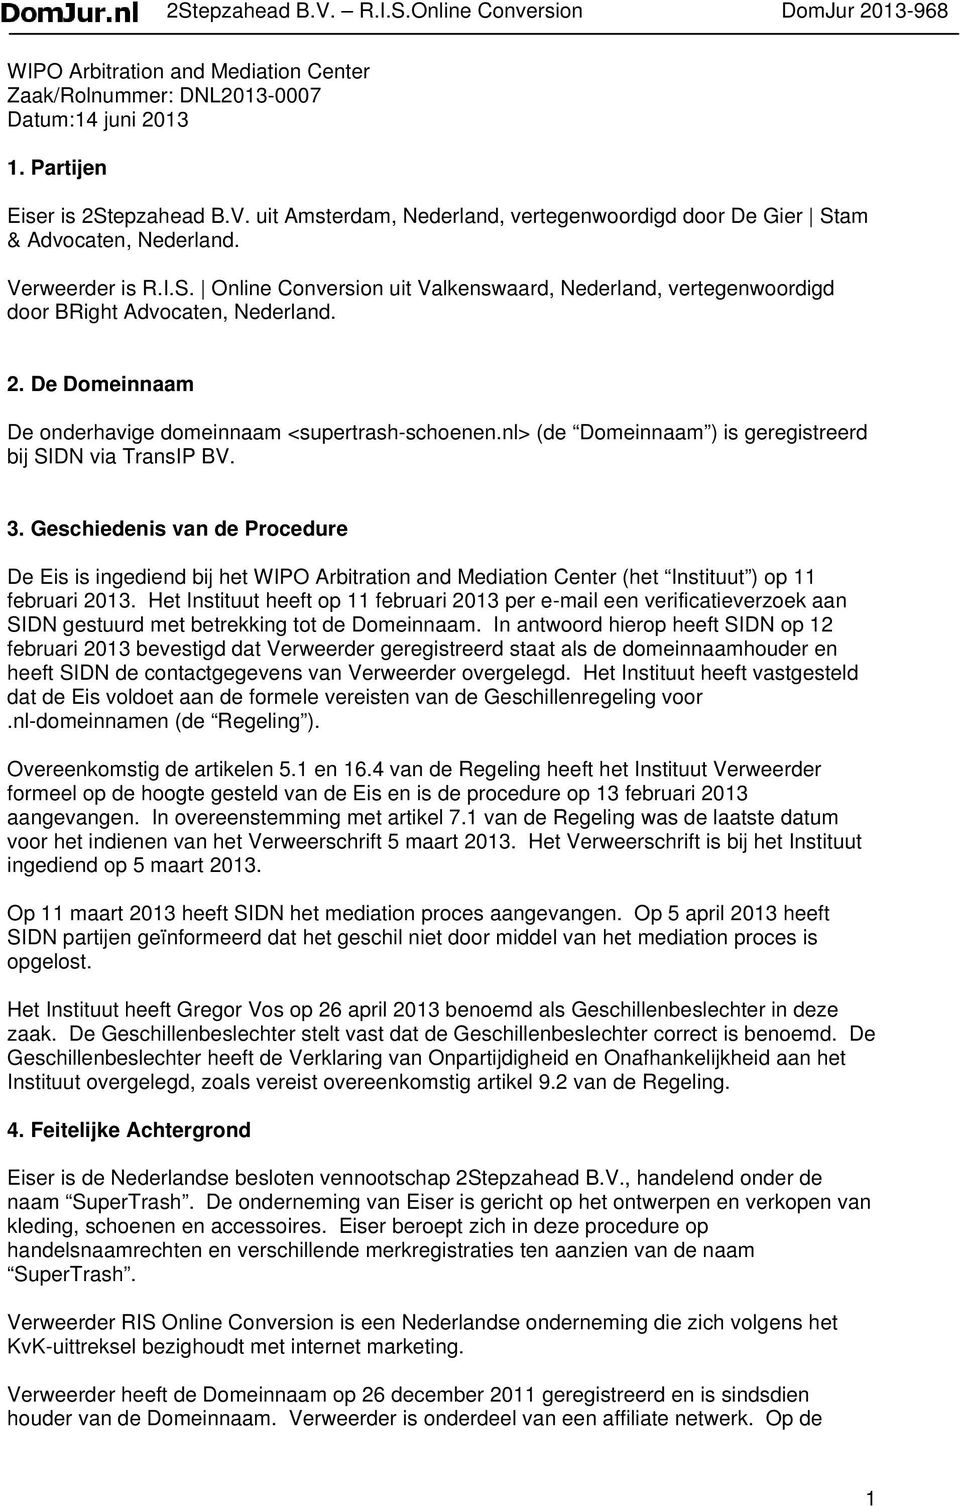 nl> (de Domeinnaam ) is geregistreerd bij SIDN via TransIP BV. 3. Geschiedenis van de Procedure De Eis is ingediend bij het WIPO Arbitration and Mediation Center (het Instituut ) op 11 februari 2013.